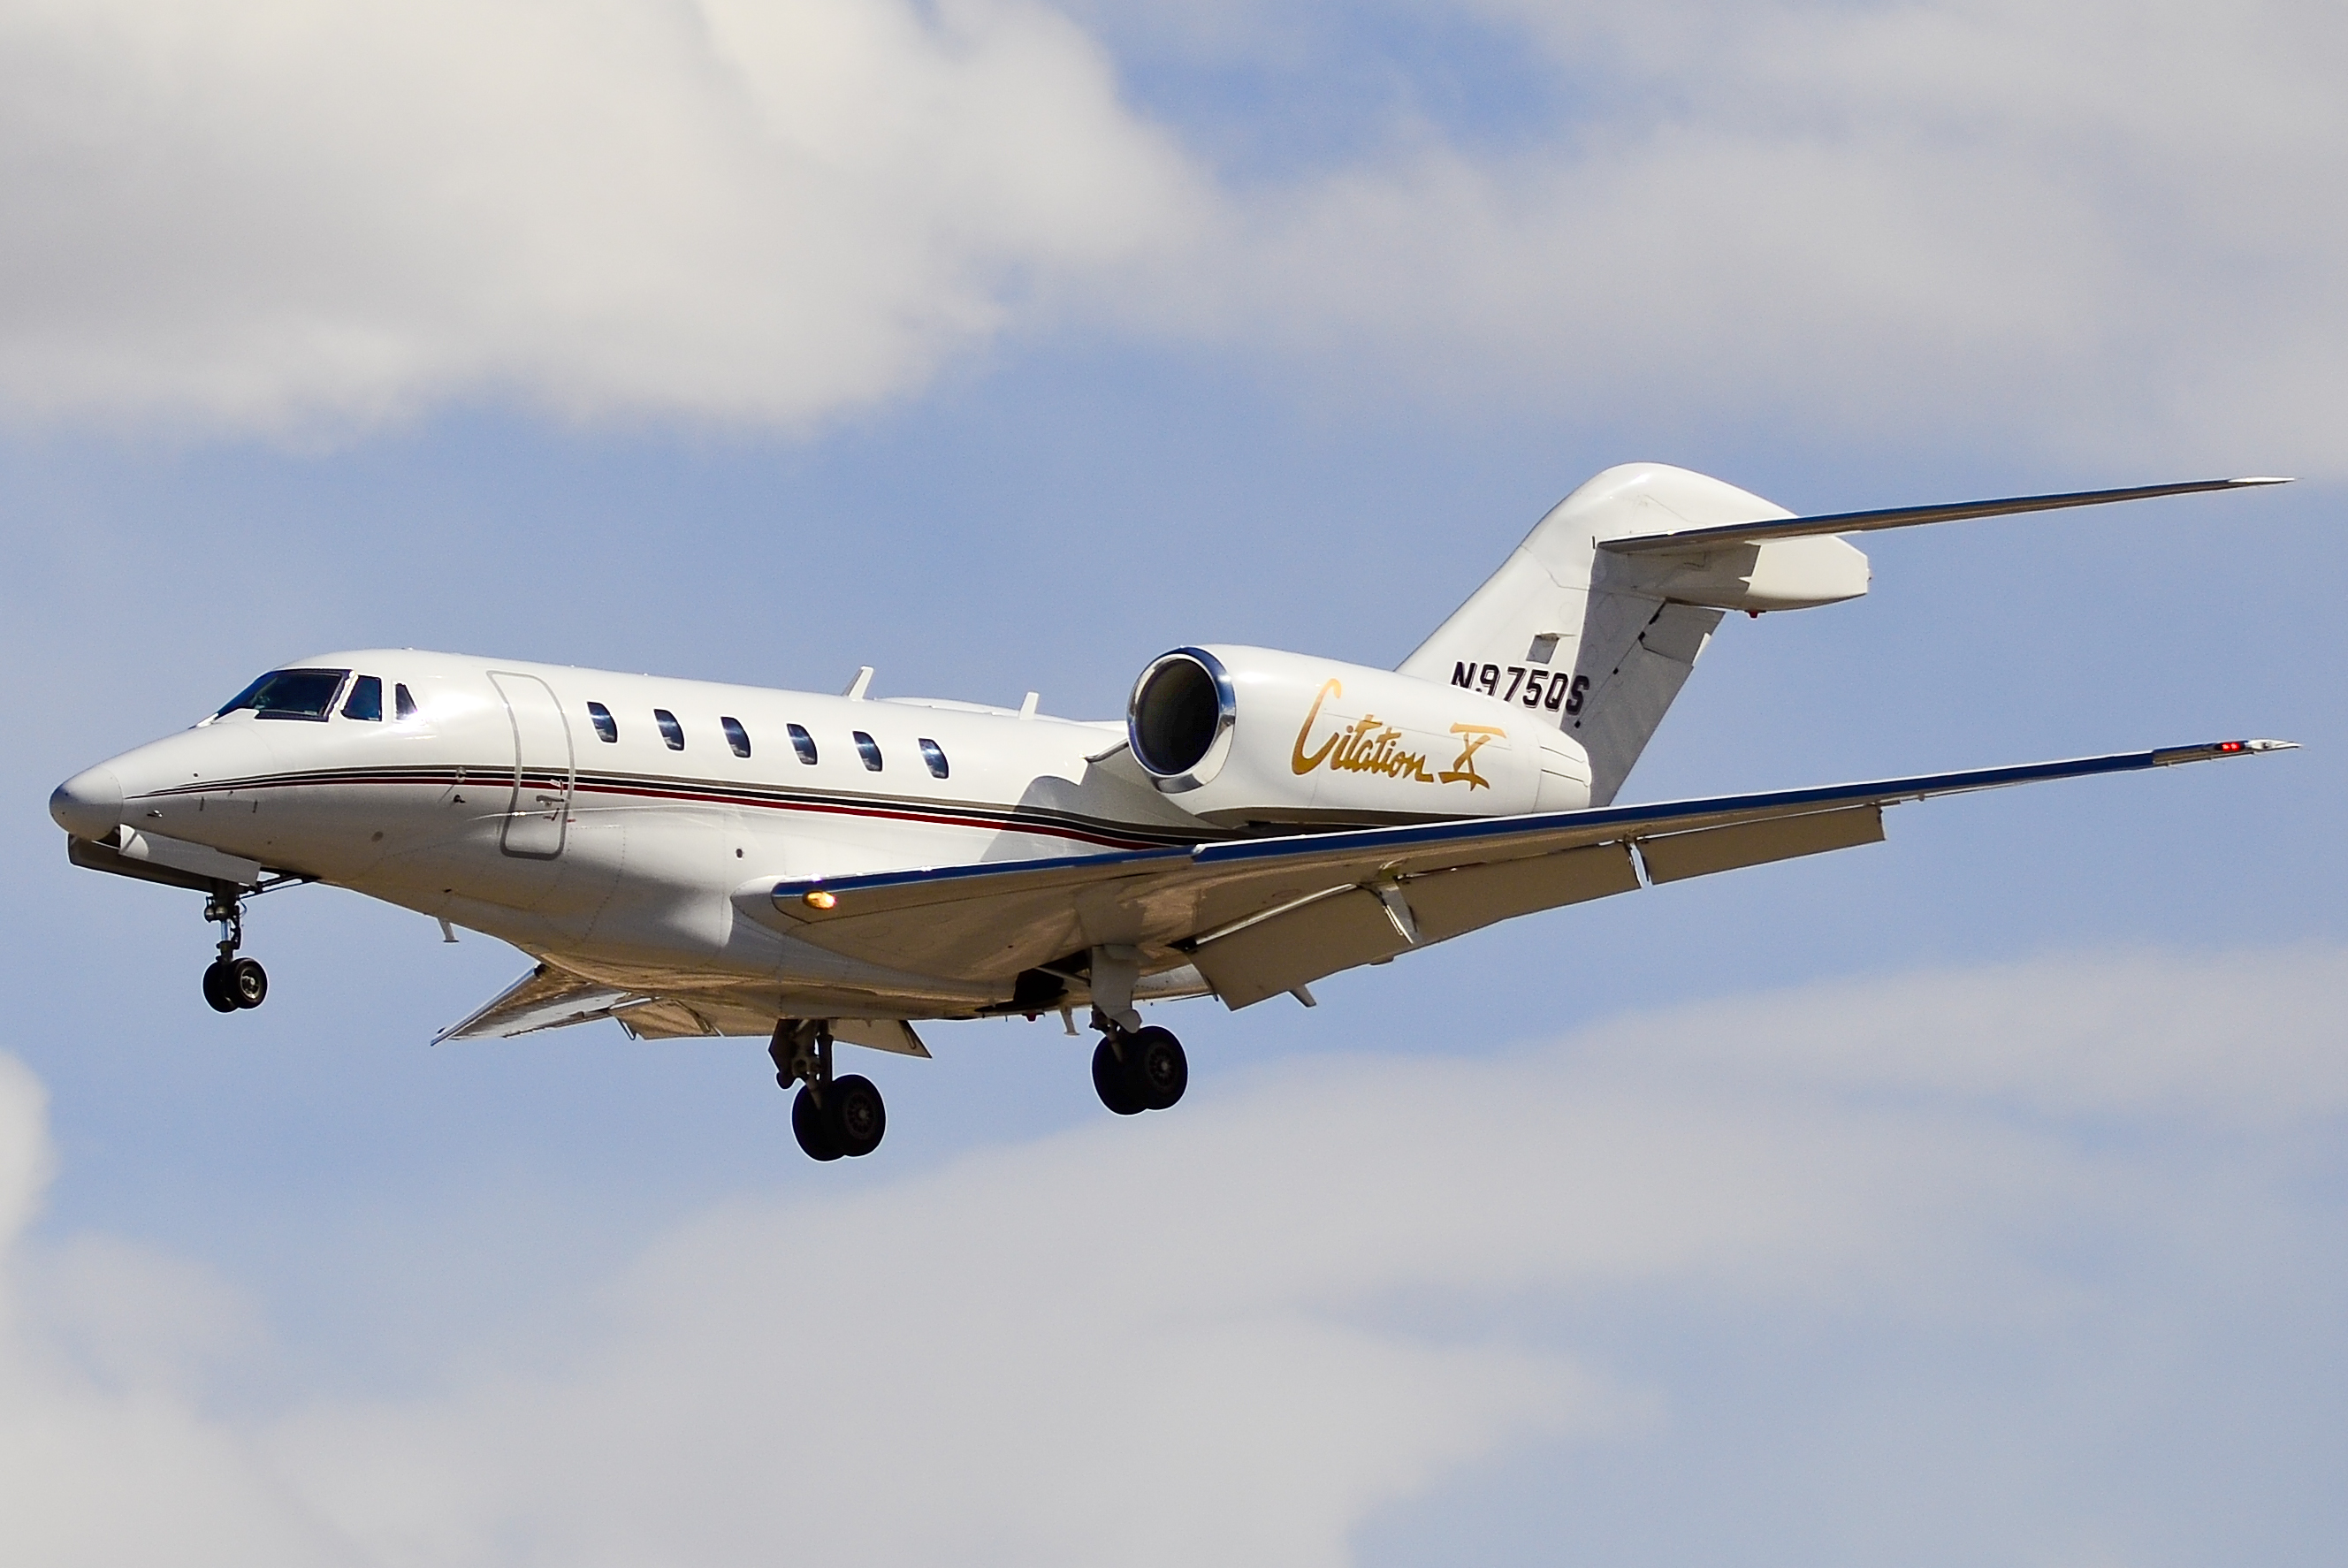 Cessna Citation X - Wikipedia